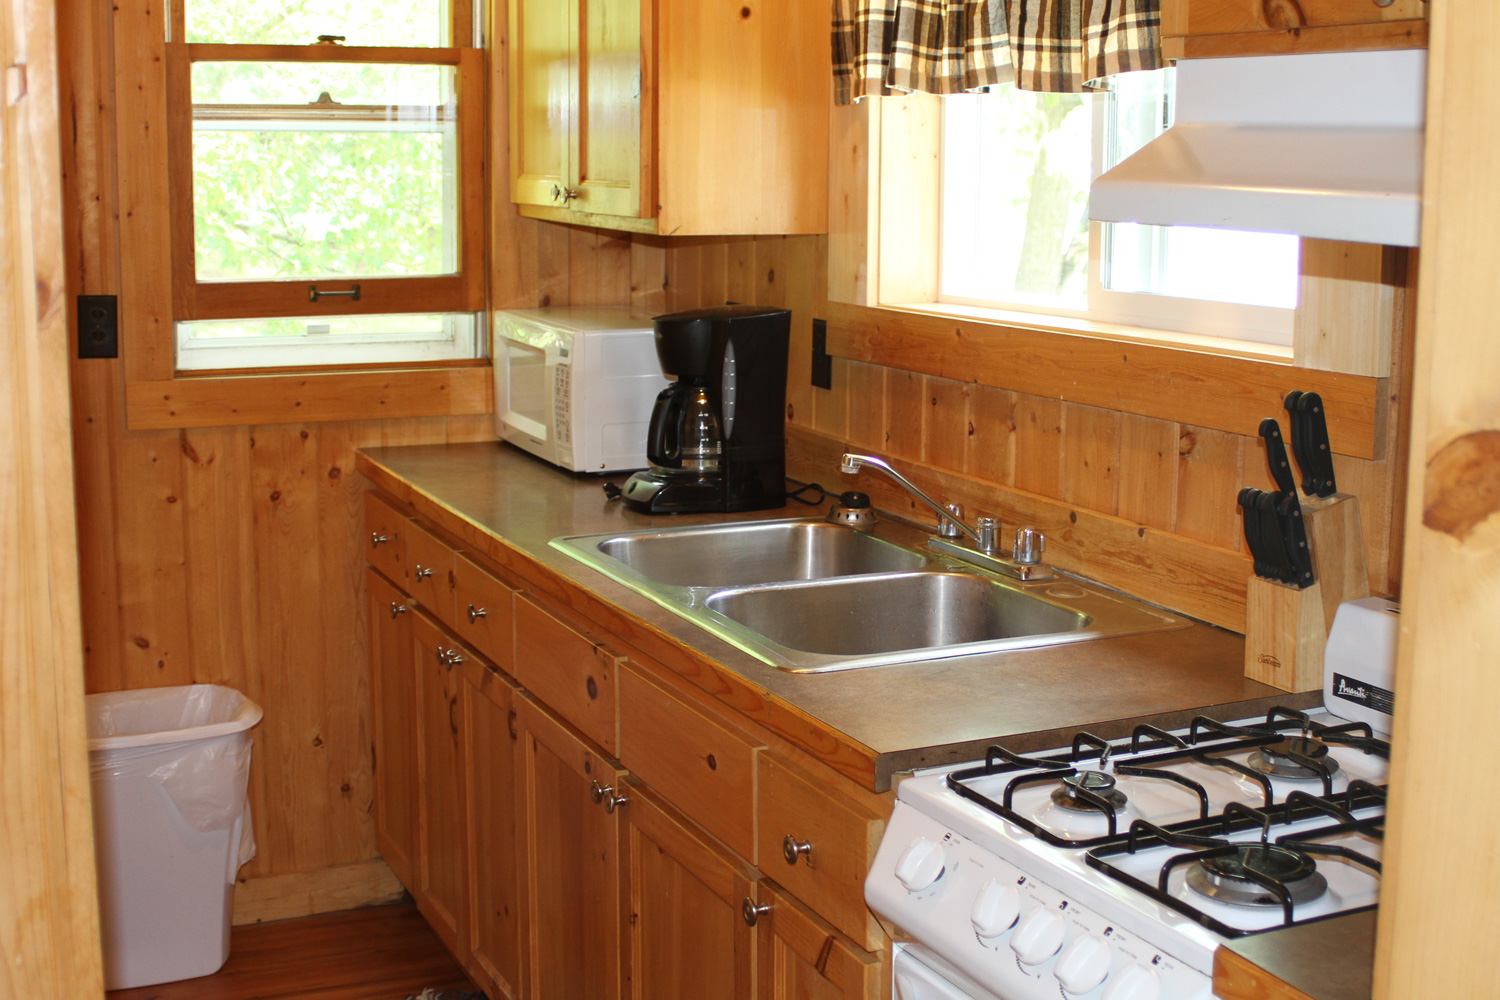 Galley Style Kitchen with lake breezes